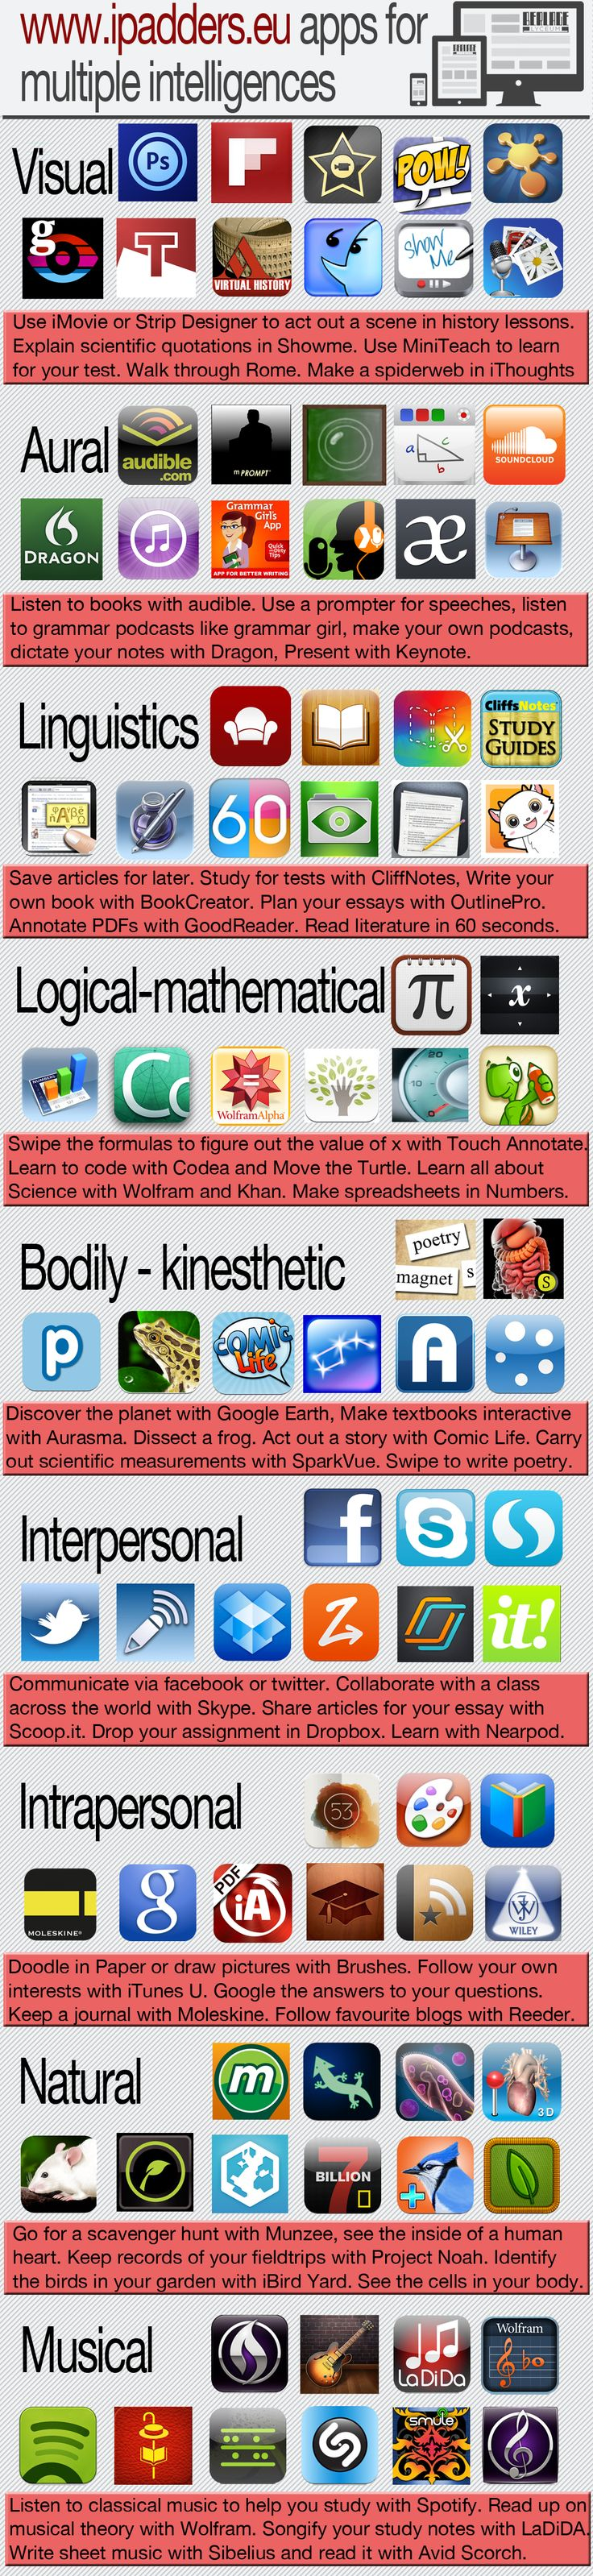 iPad Apps for Multiple Intelligences